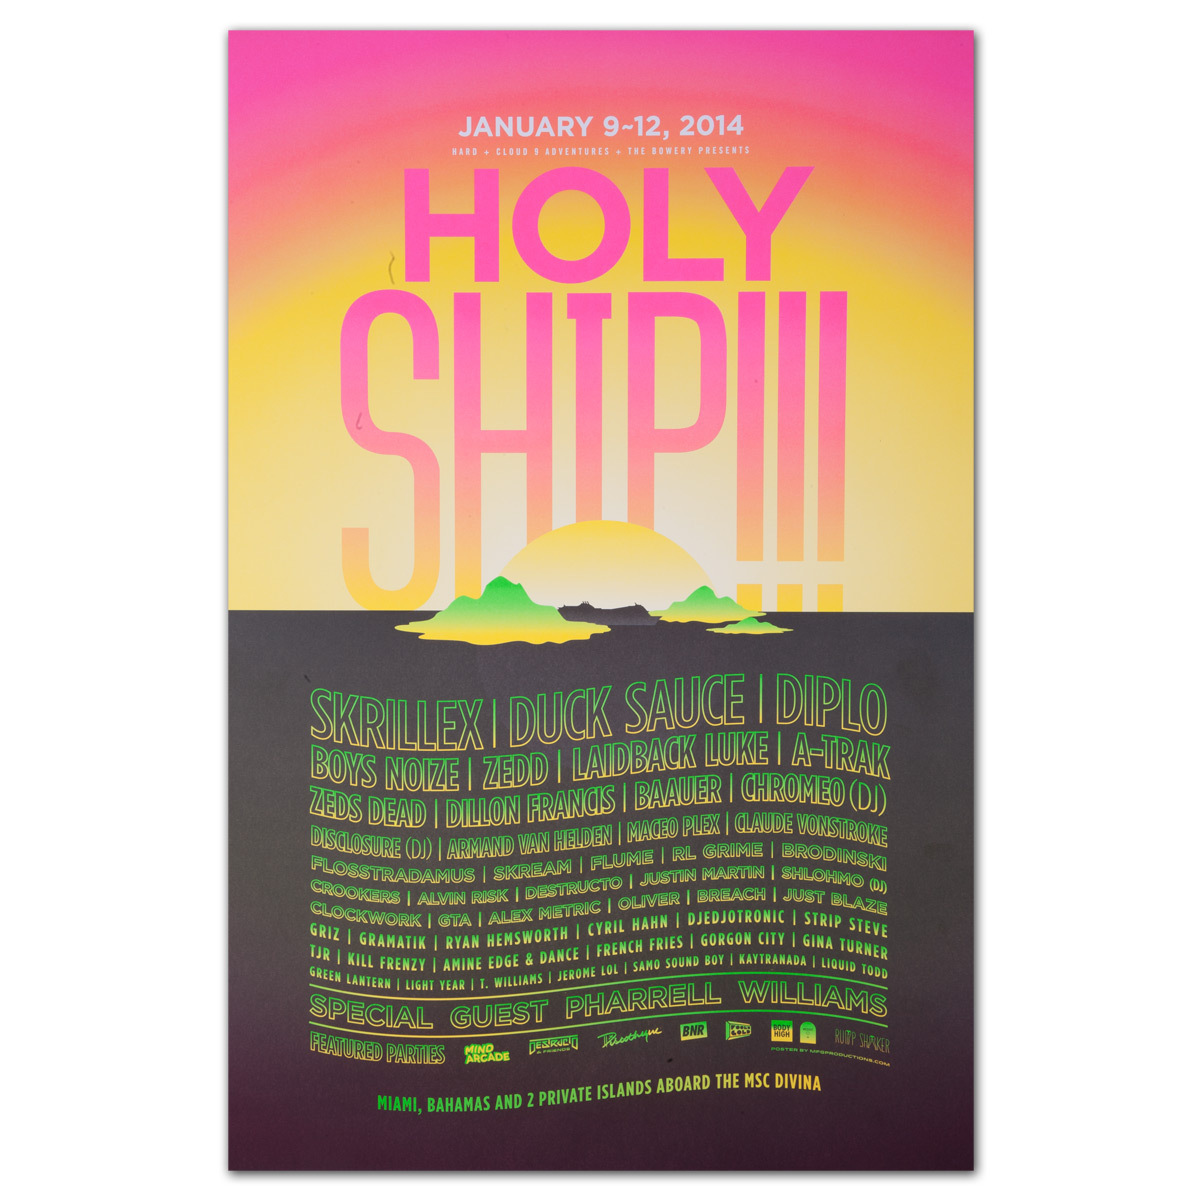 Holy Ship!!! 2014 Poster